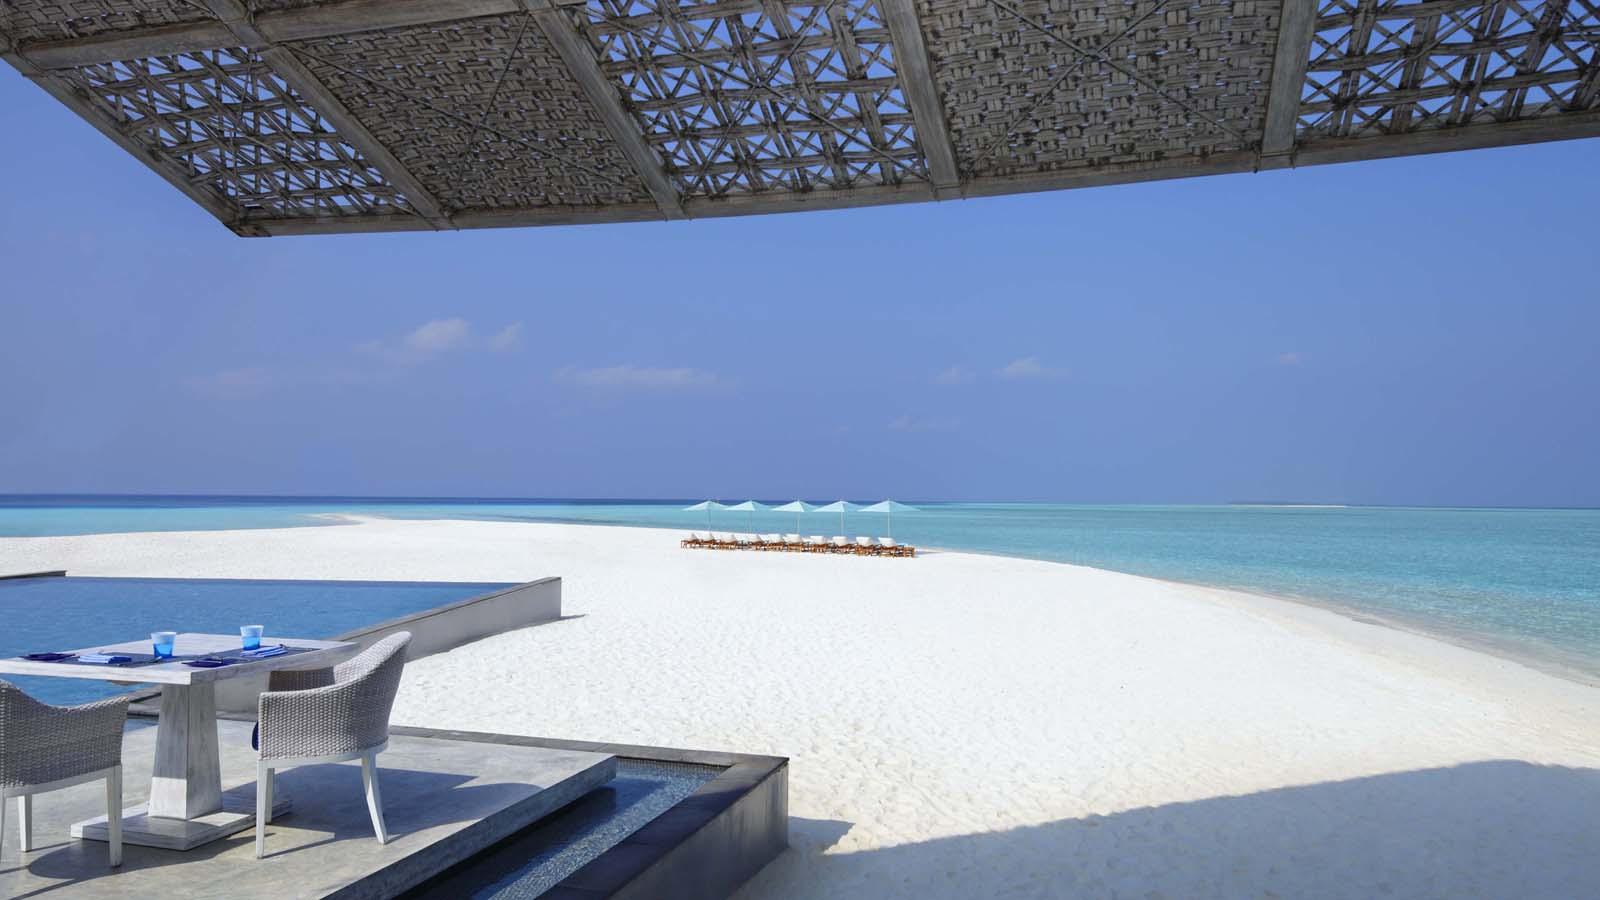 Bed and Breakfast Package Offered at Four Seasons Resort Maldives at Landaa Giraavaru, a Five-Star Resort  in the Maldives